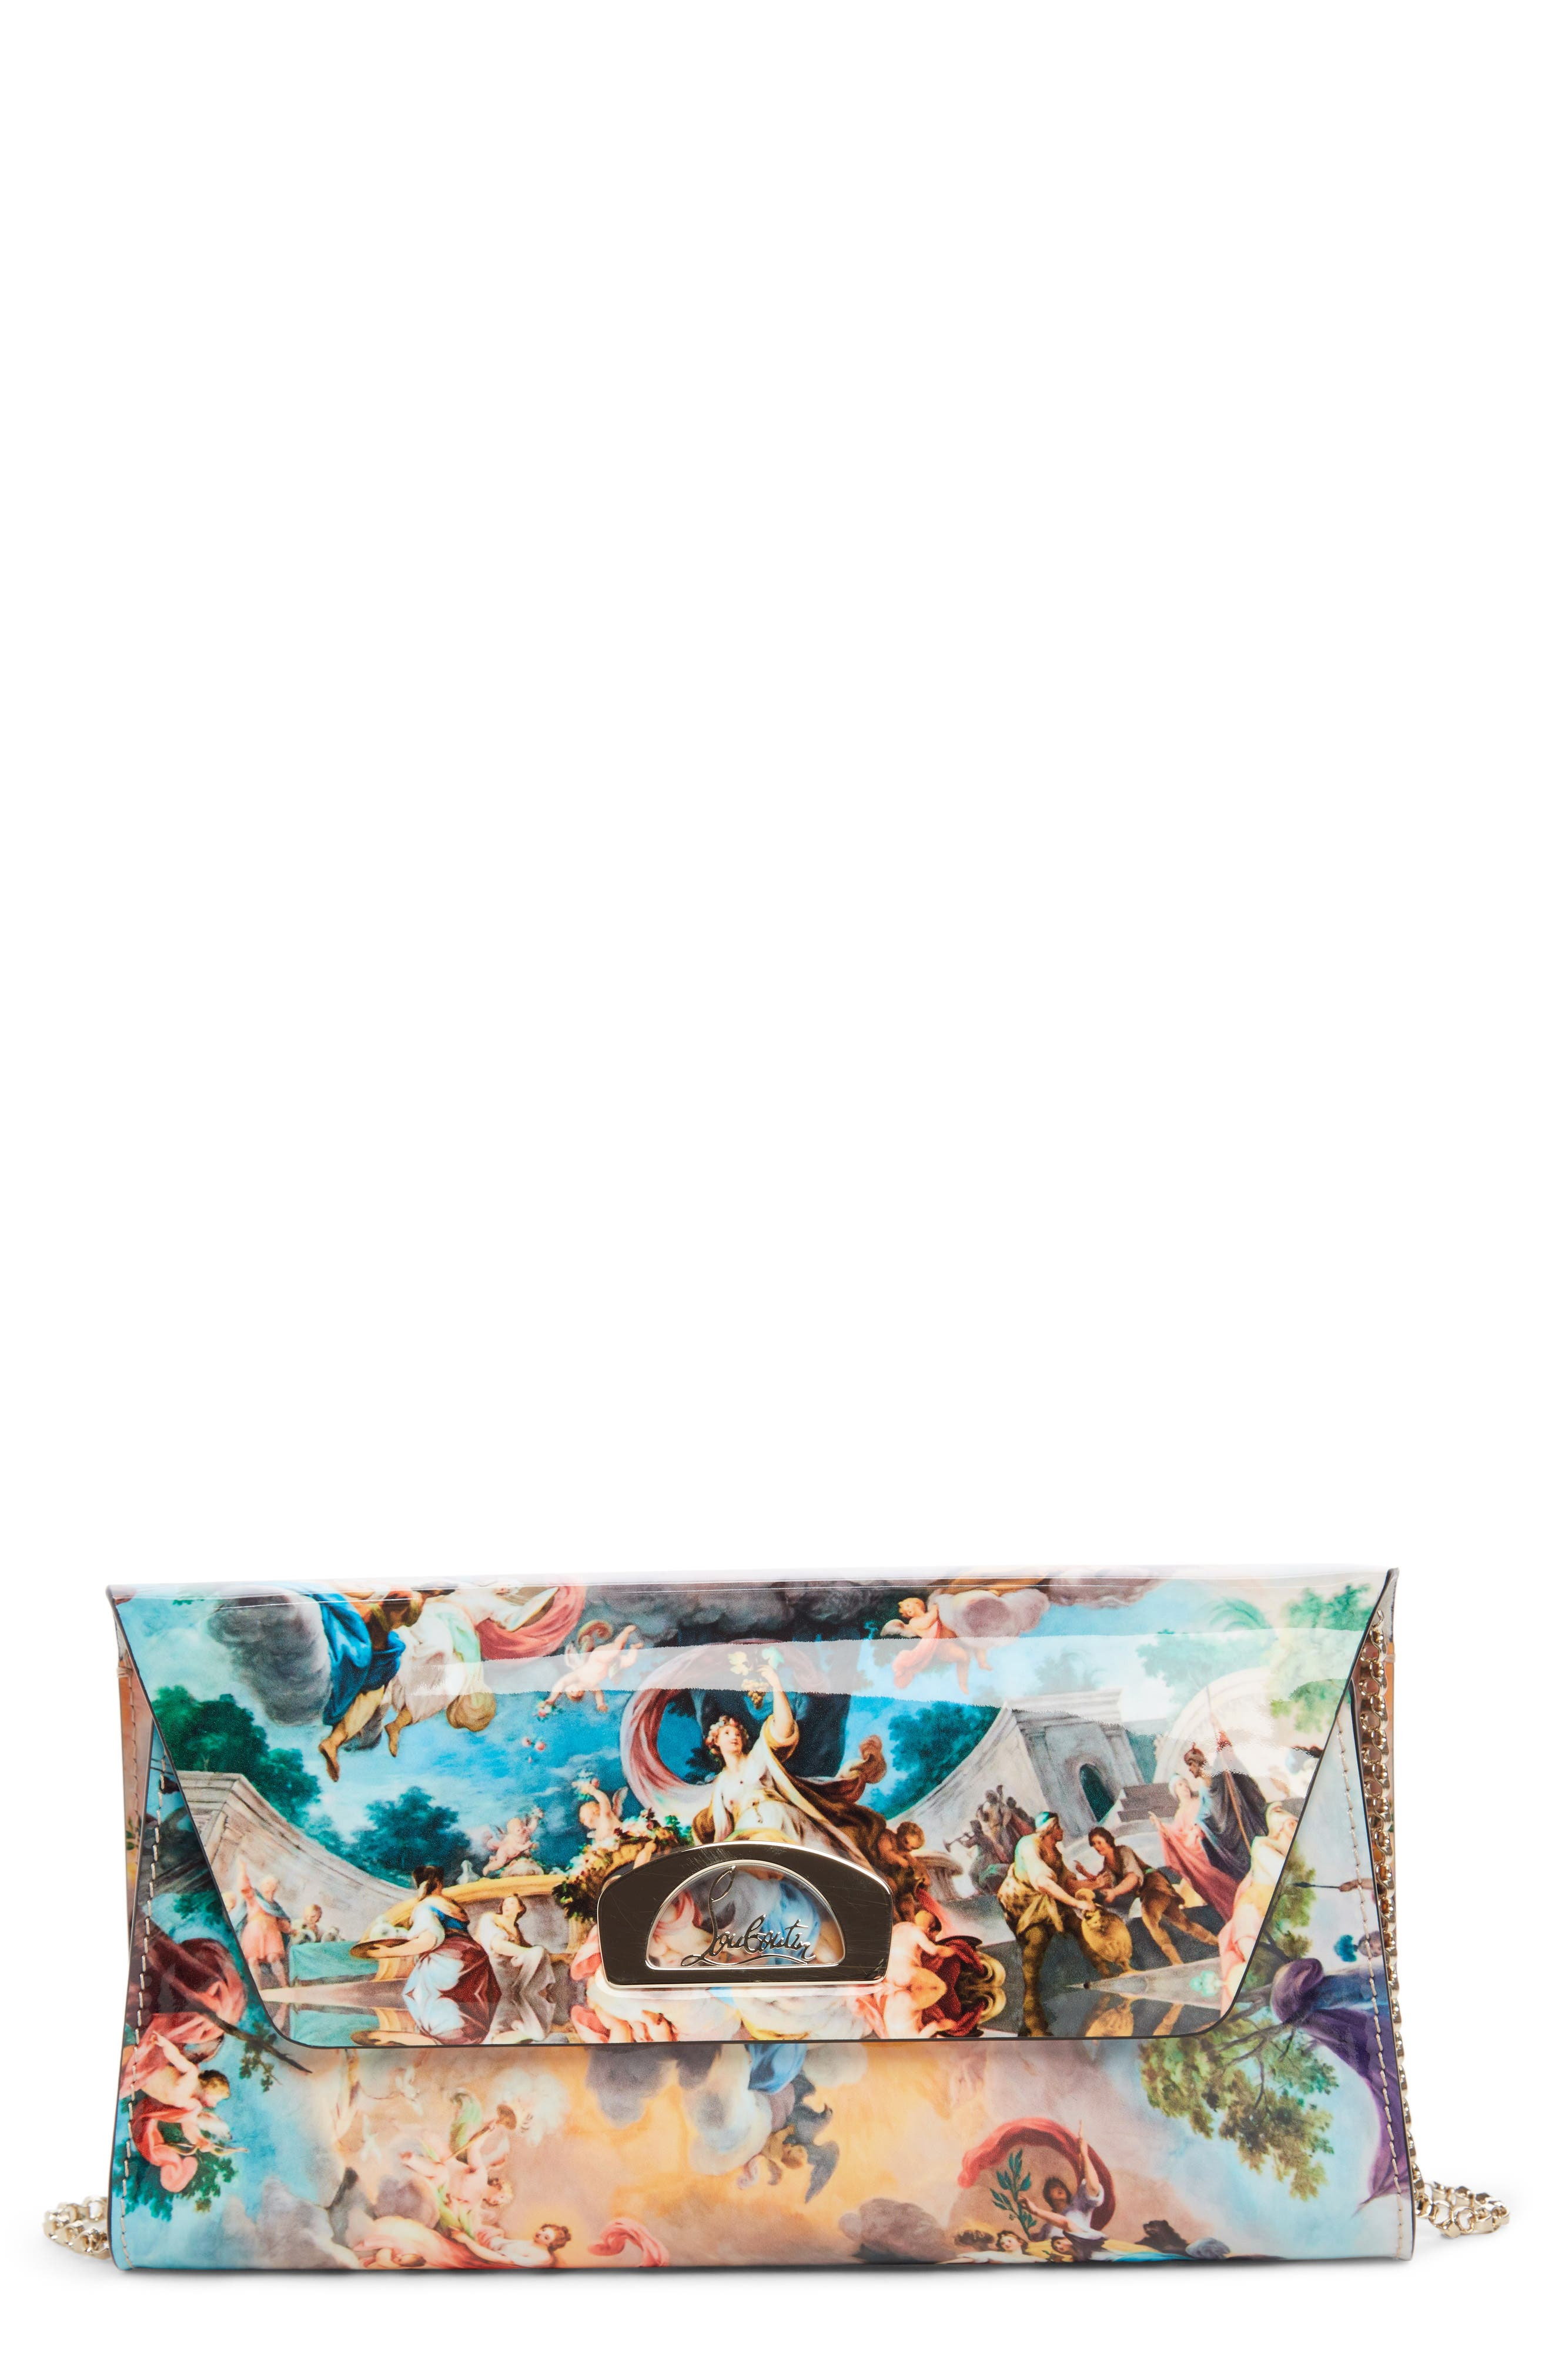 Christian Louboutin Vero Dodat Fresco Print Leather Clutch